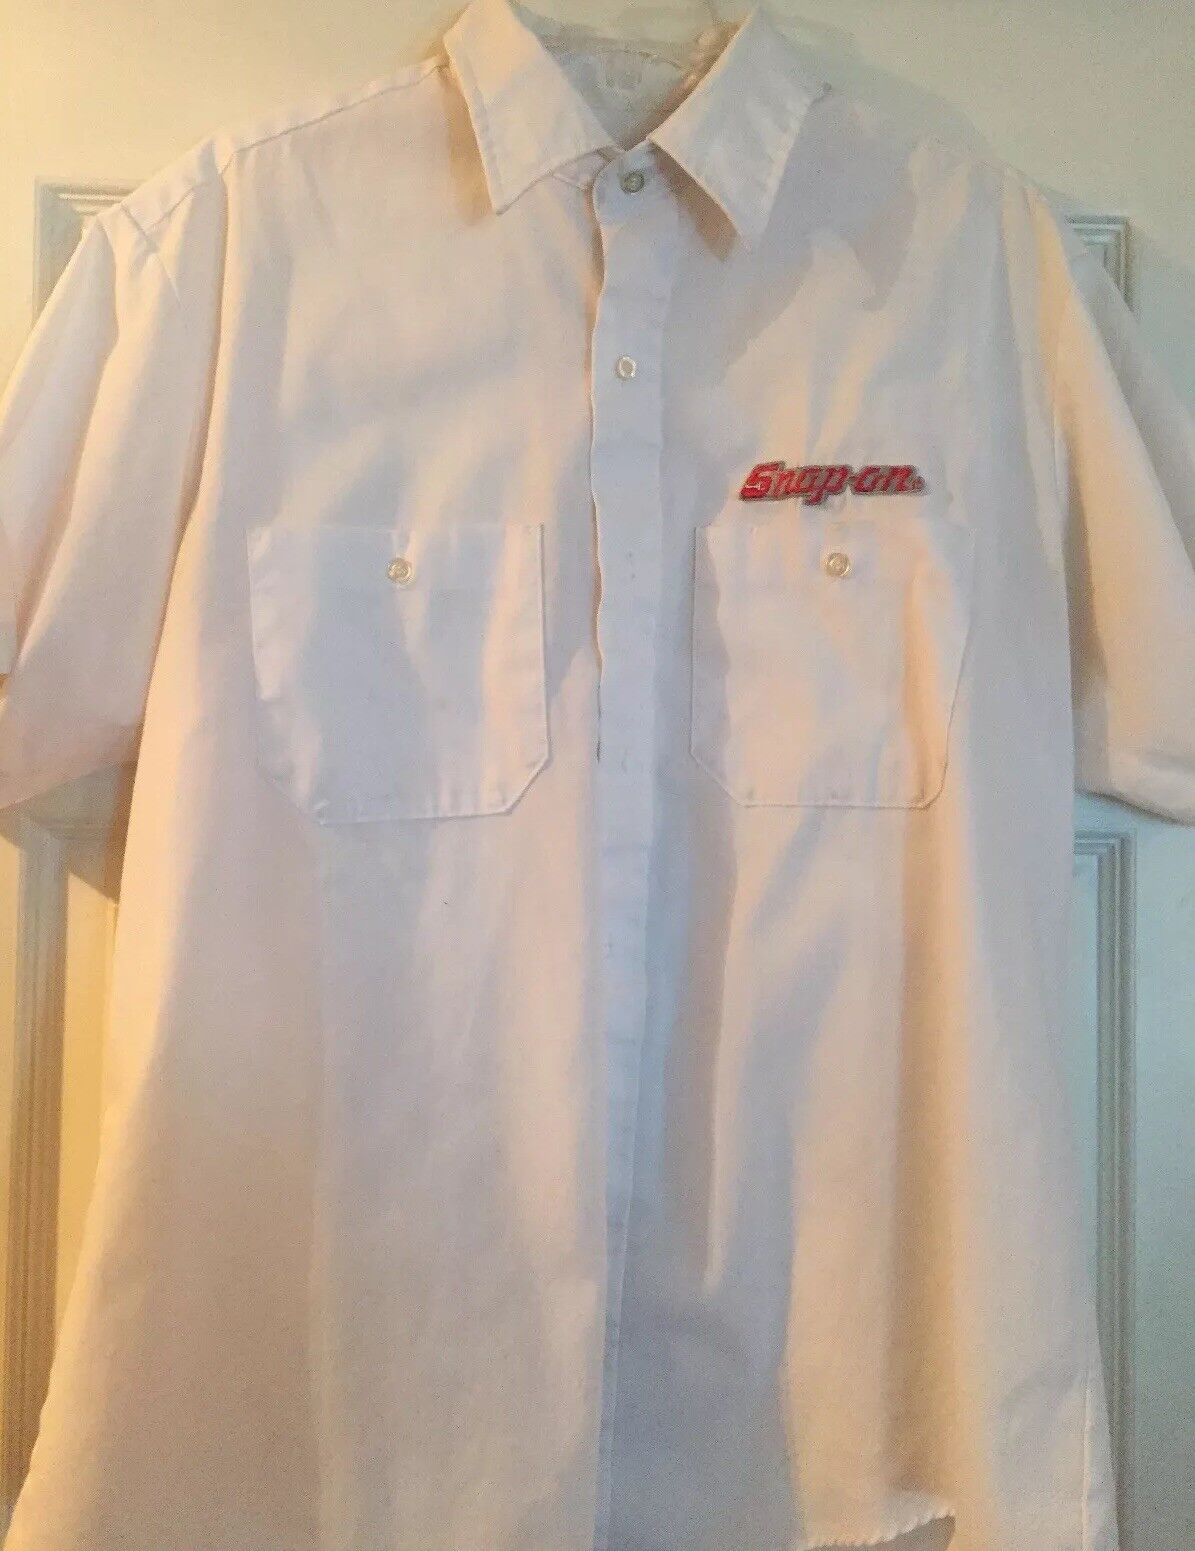 Snap On Tools White Button Up Dress Shirt 80s Large